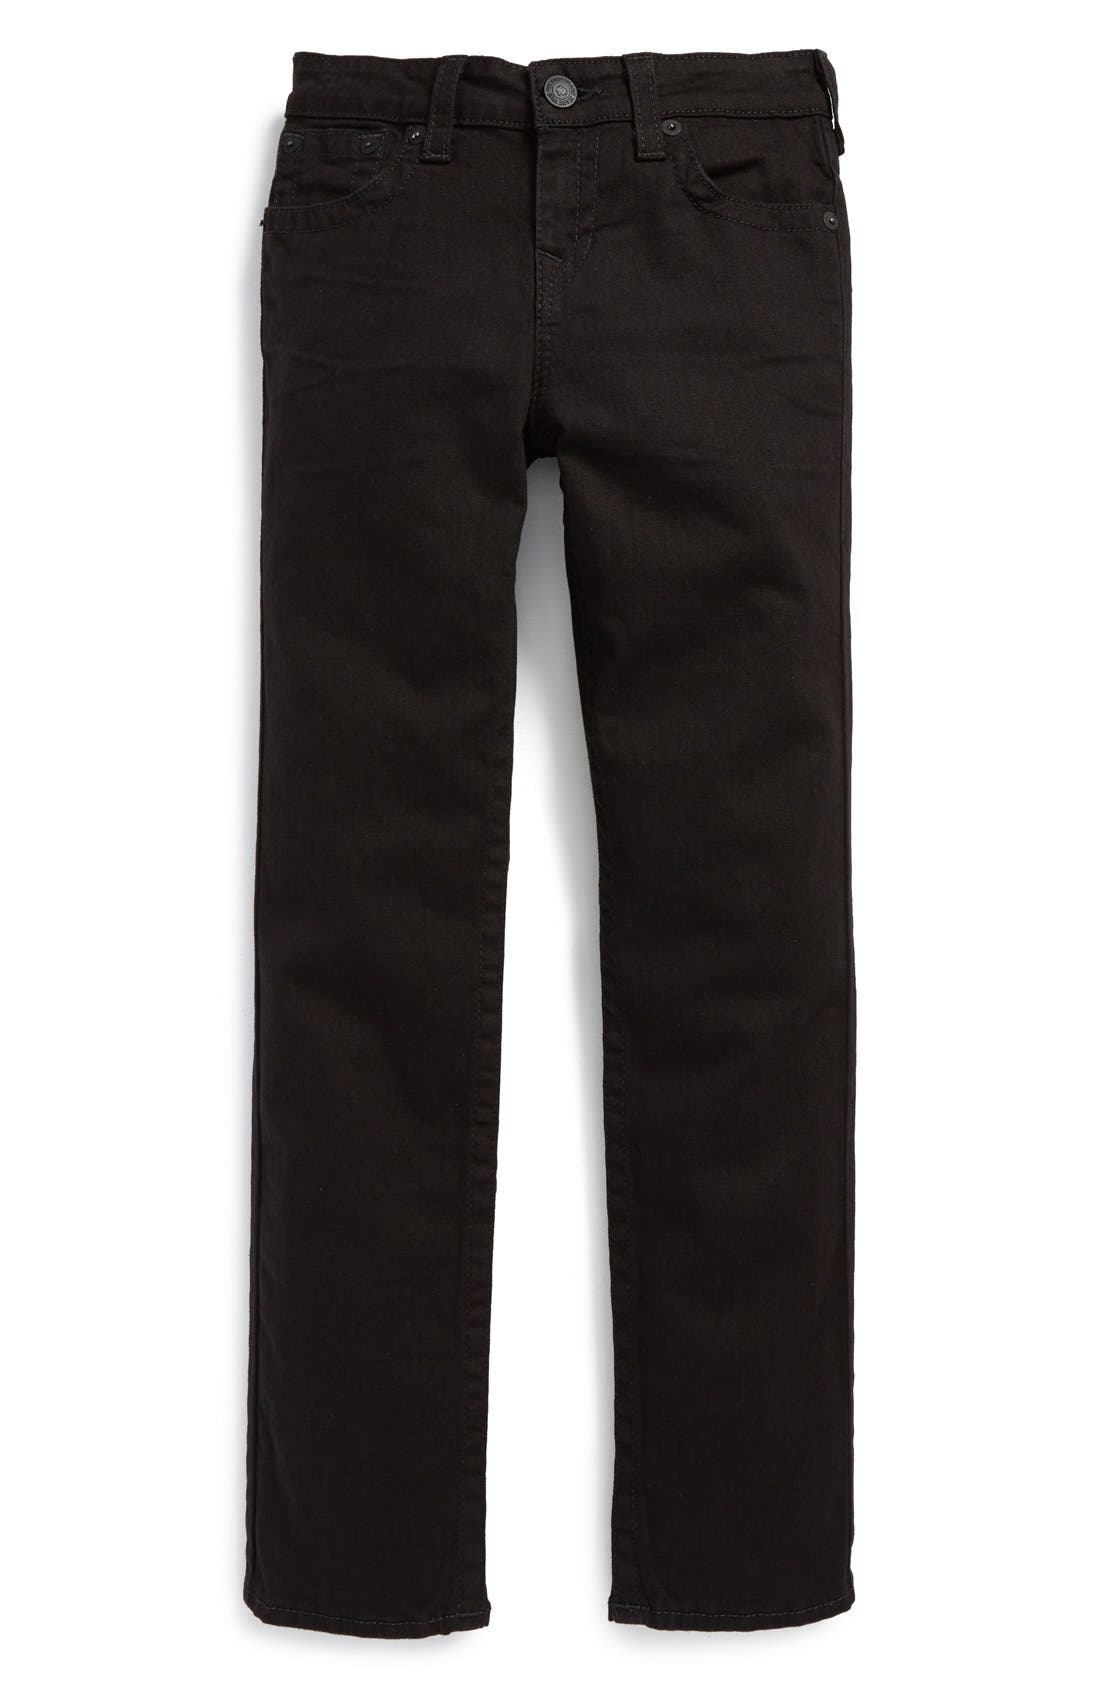 'Geno' Relaxed Slim Fit Jeans,                             Main thumbnail 1, color,                             018